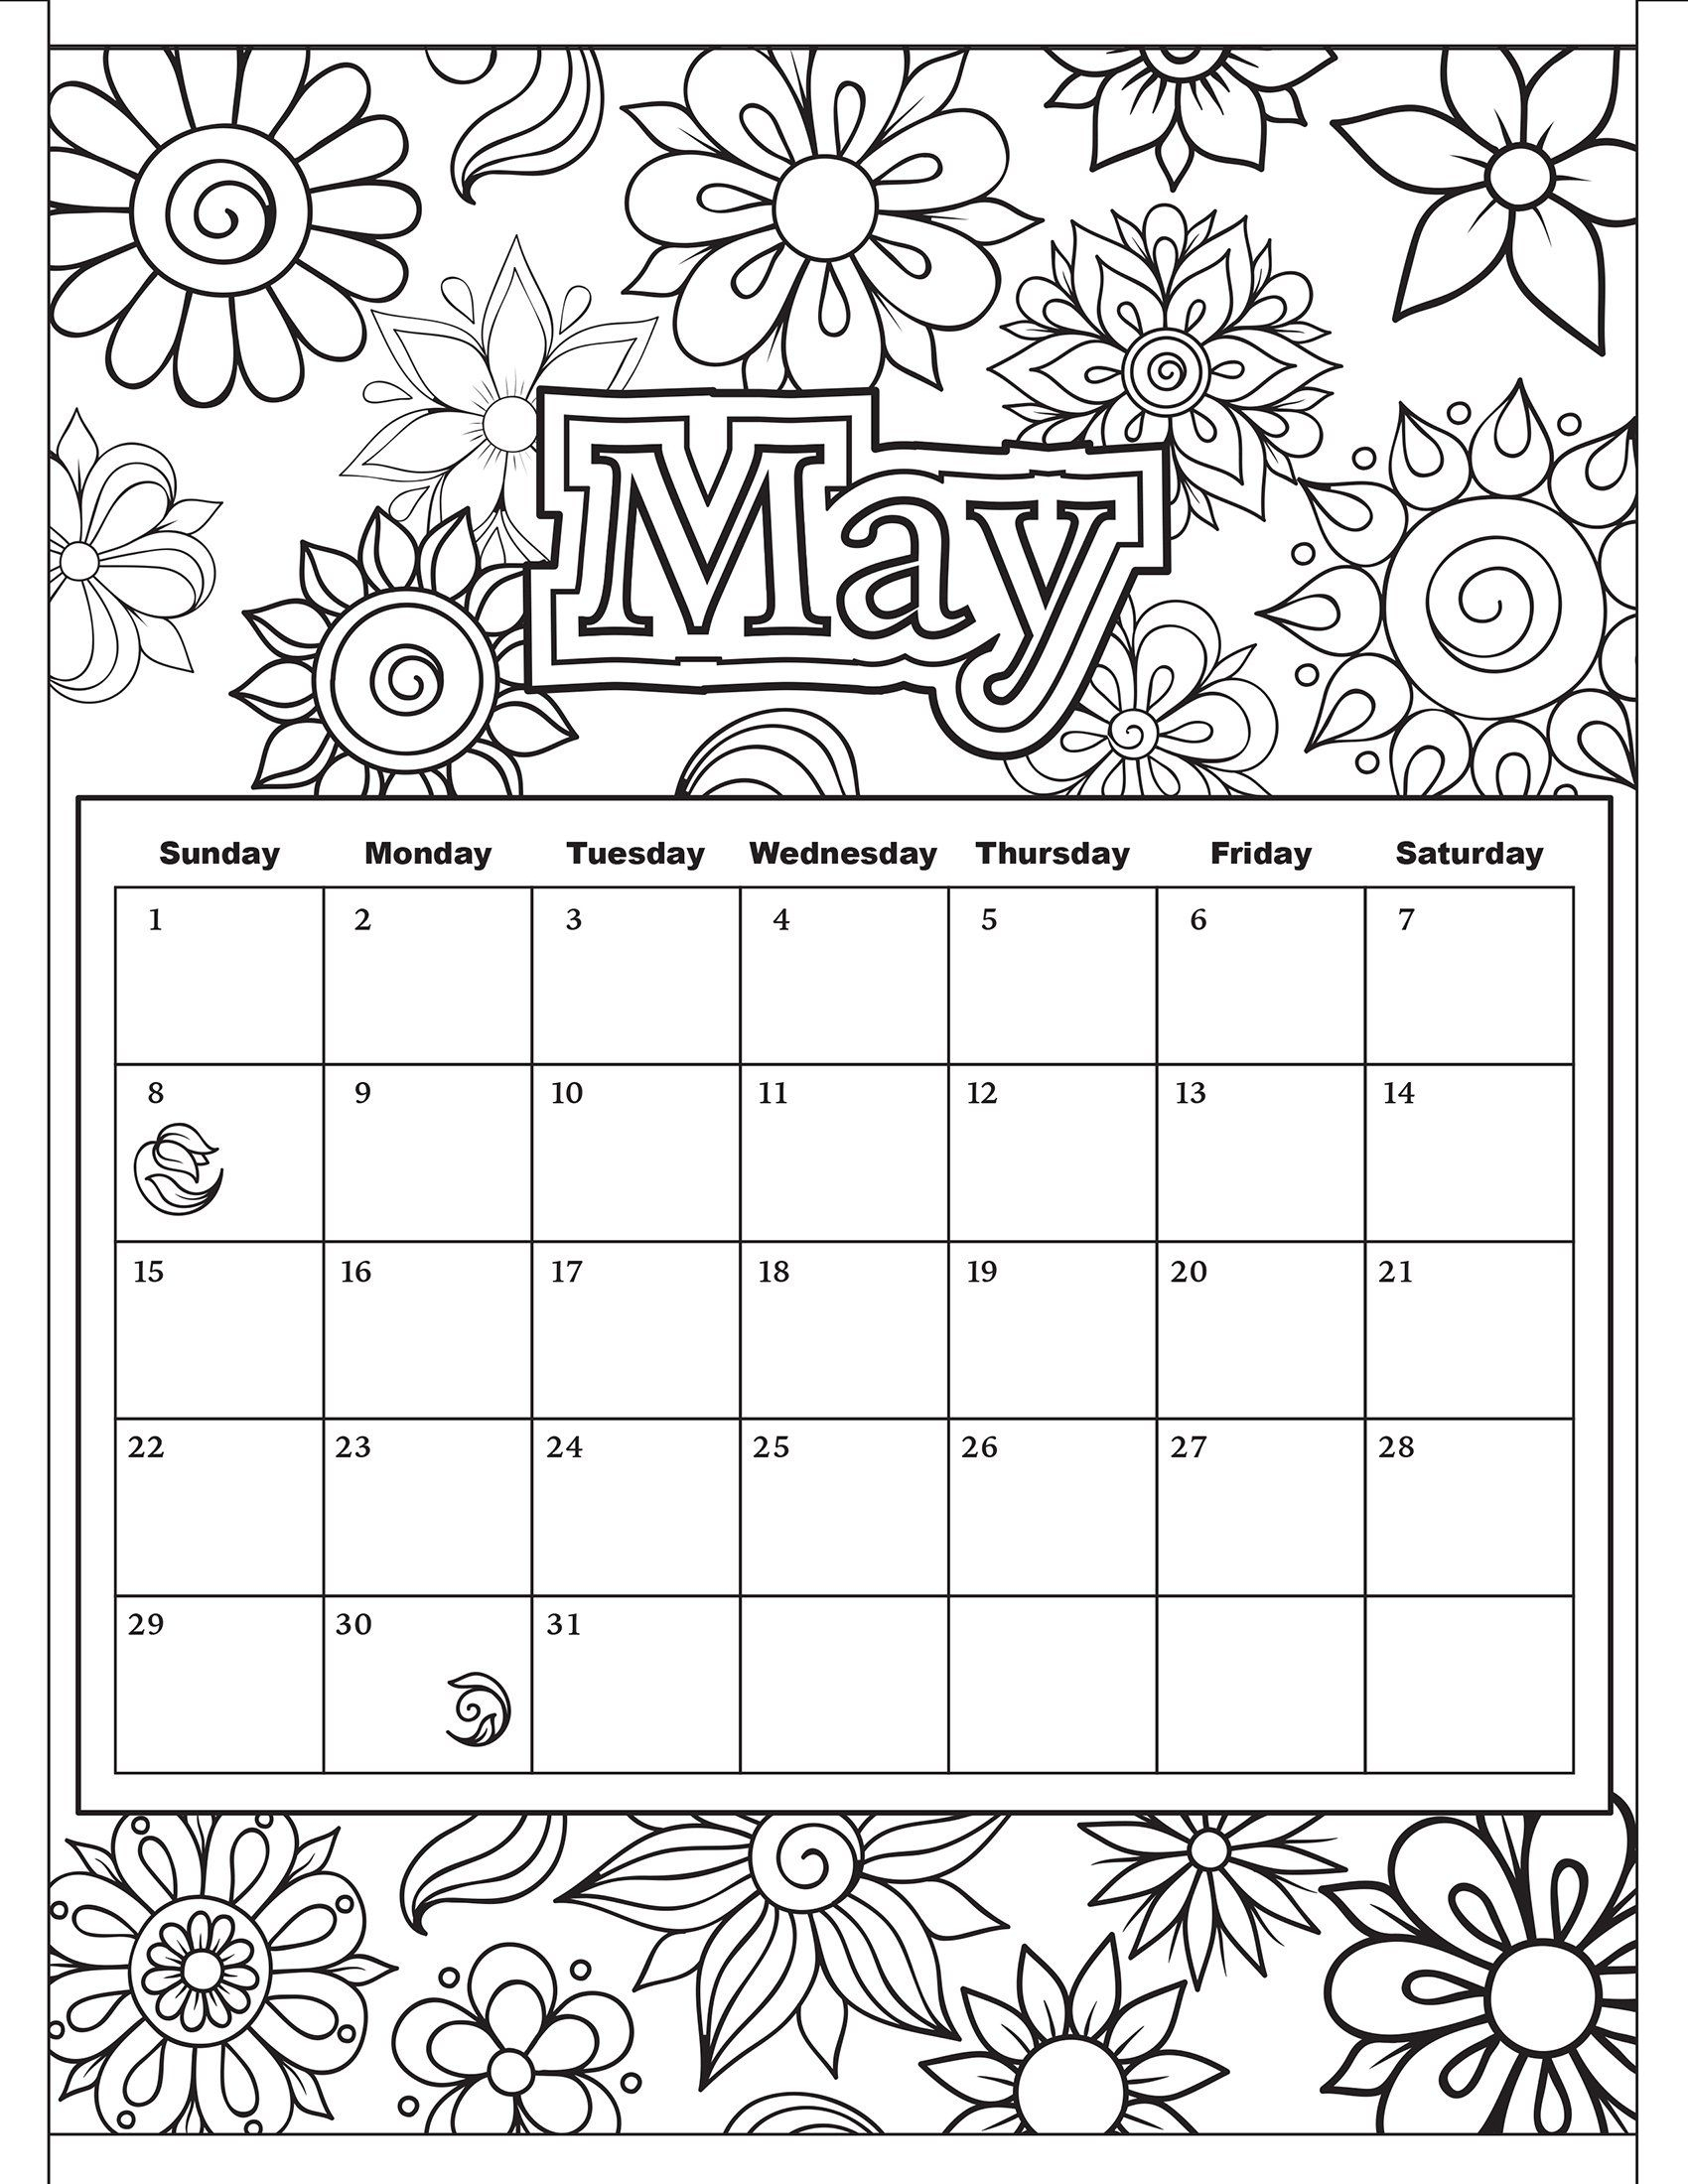 Free Download: Coloring Pages From Popular Adult Coloring Books in Printable Coloring Calendar 2019-2020